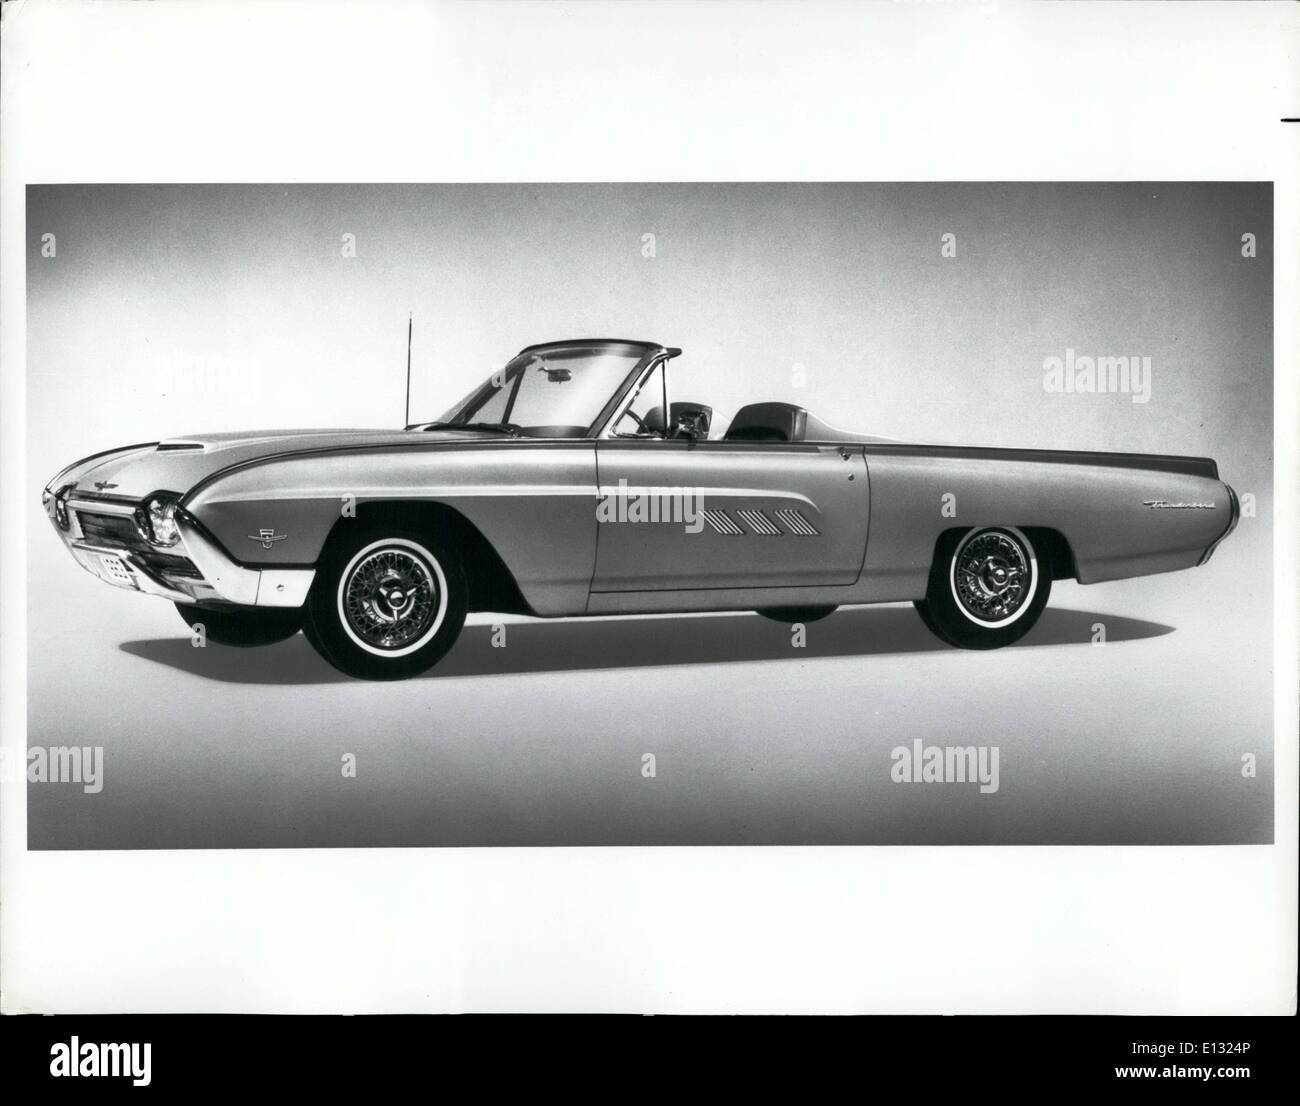 Feb. 26, 2012 - A unique experience in ''top down'' motoring is offered in the Thunderbird sports roadster for 1963. With its automatic convertible top gliding back completely out of sight into the trunk with a touch of a dashboard switch, the sports roadster, like the convertible, retains its classic silhouette even when the top is down. A tonneau cover over the entire rear portion of the passenger compartment transforms the four-seat Thunderbird into a sporty two-seater. The roadster features head rests, wire spoke wheels and an assist bar for passenger convenience - Stock Image